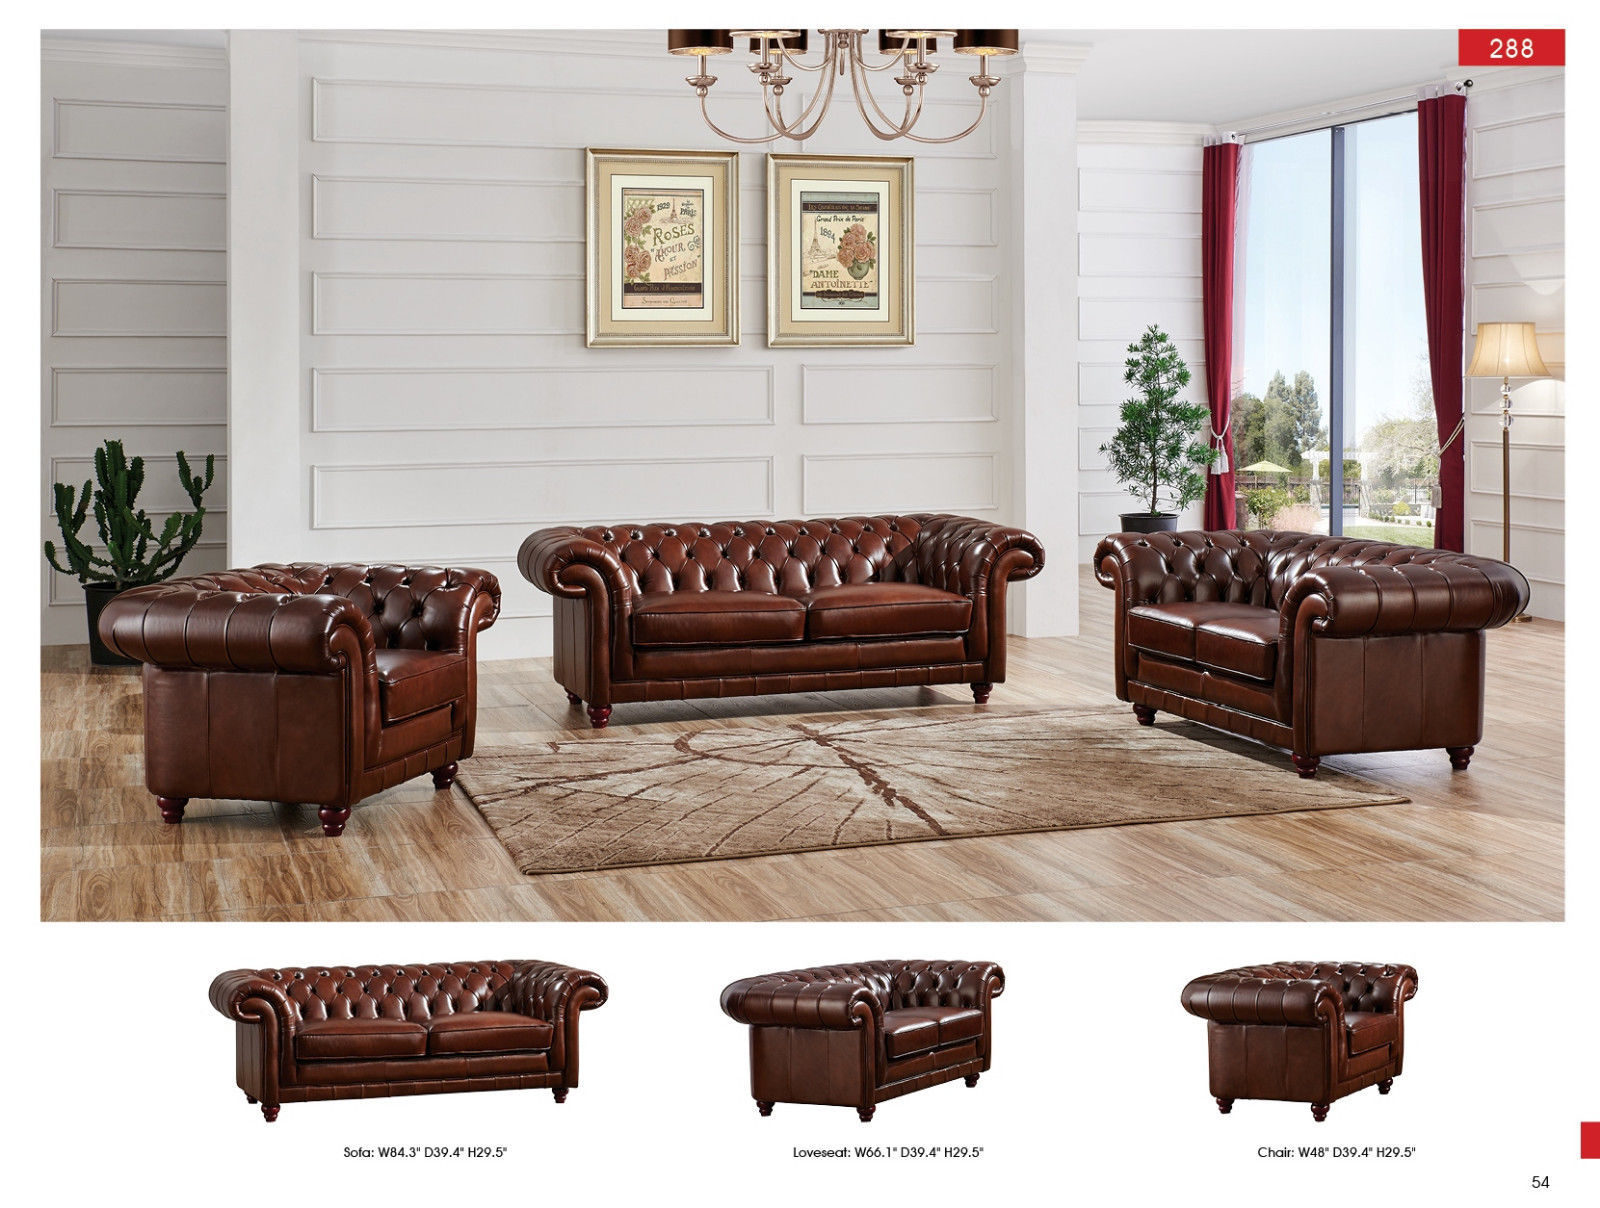 ESF 288 Italian Leather Living Room Sofa Tufted Brown Classic Traditional Style